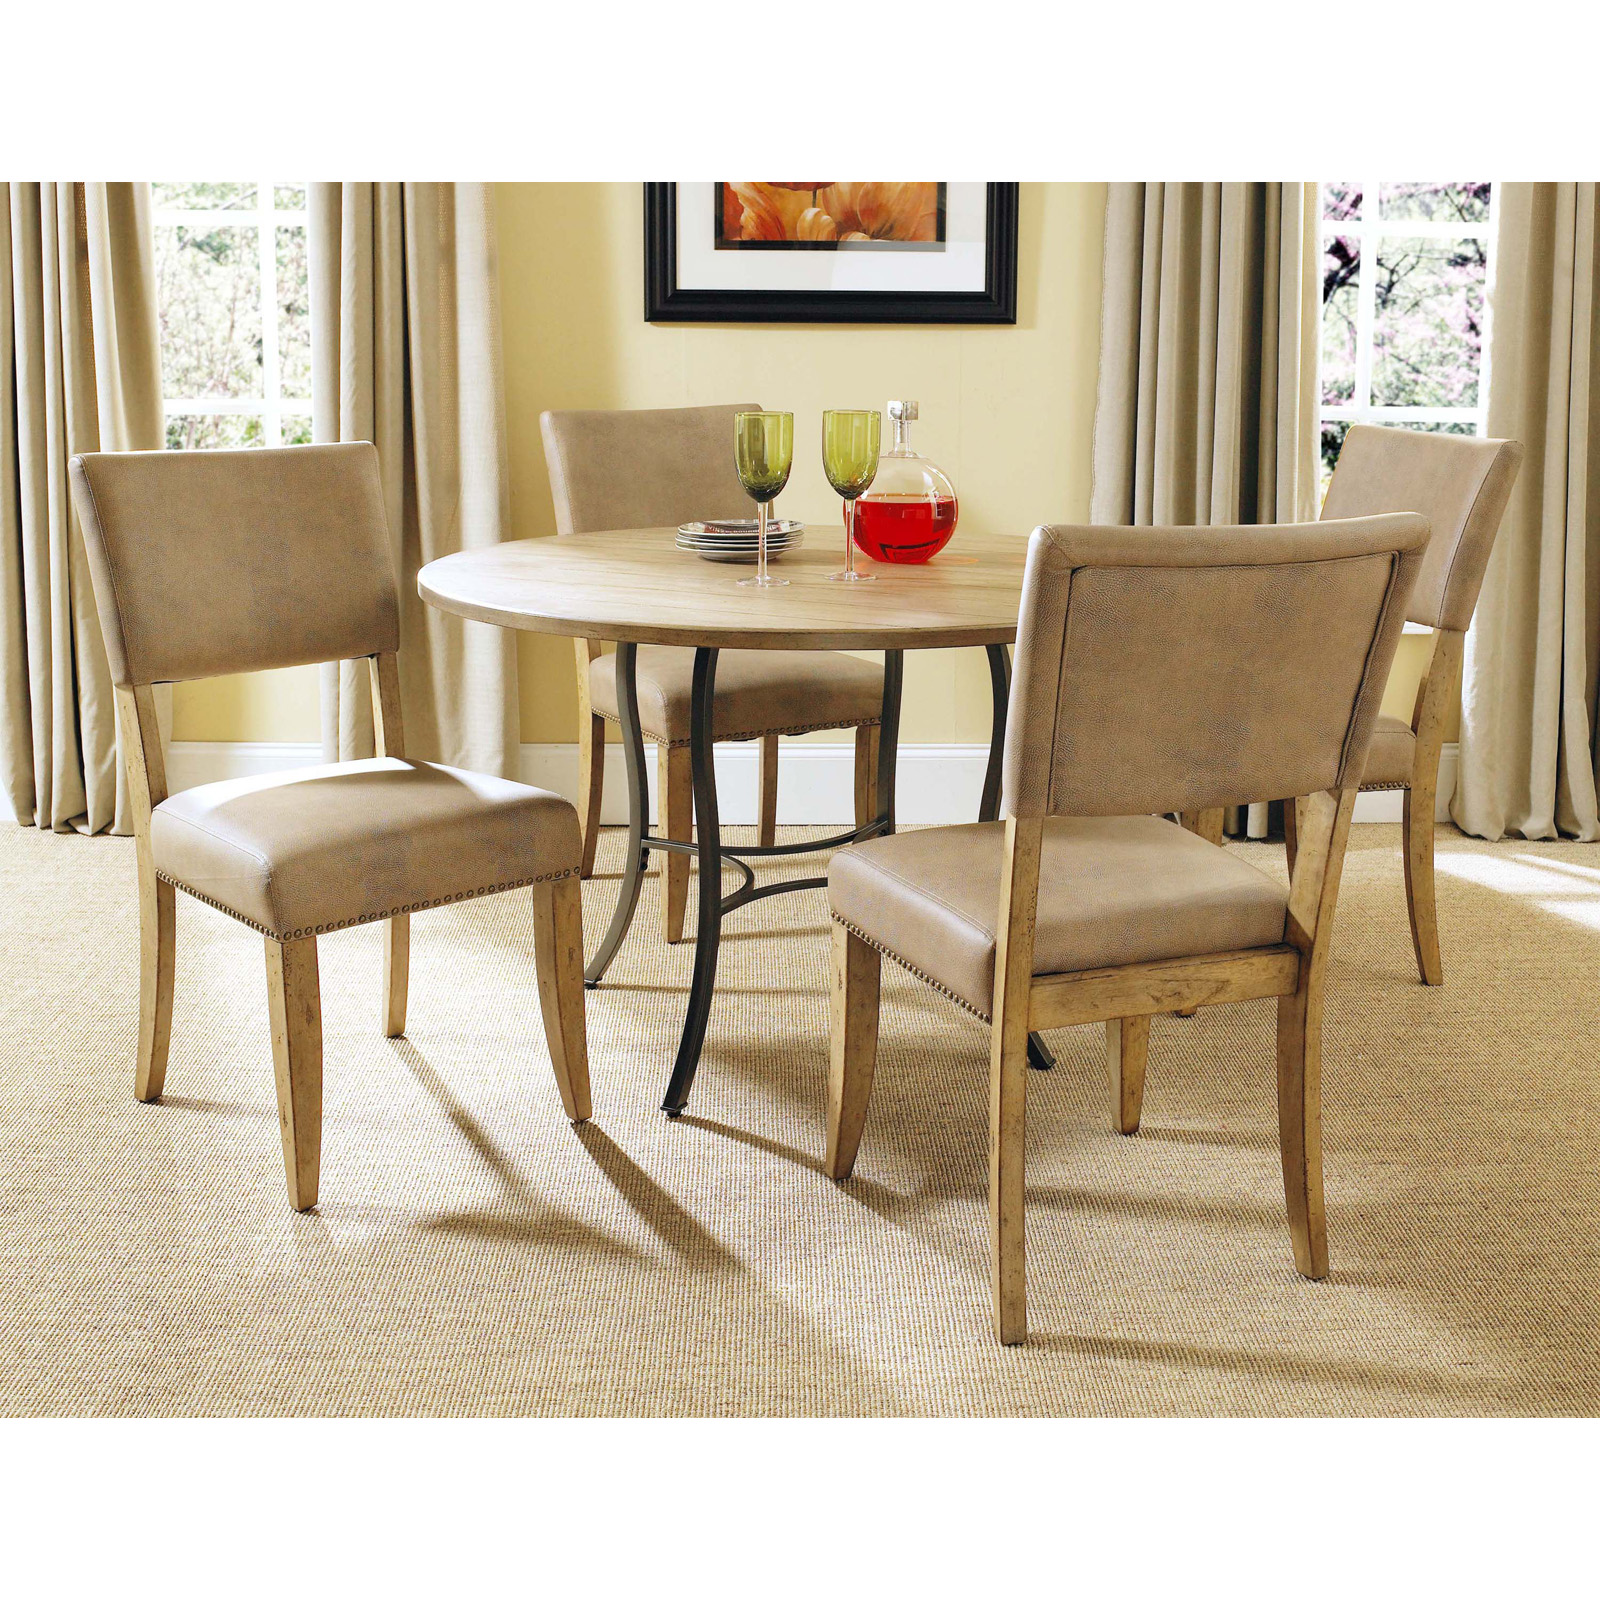 Wood & Metal Dining Set With Parson Chairs Dining Table Sets At. Full resolution‎  file, nominally Width 1600 Height 1600 pixels, file with #B9170F.